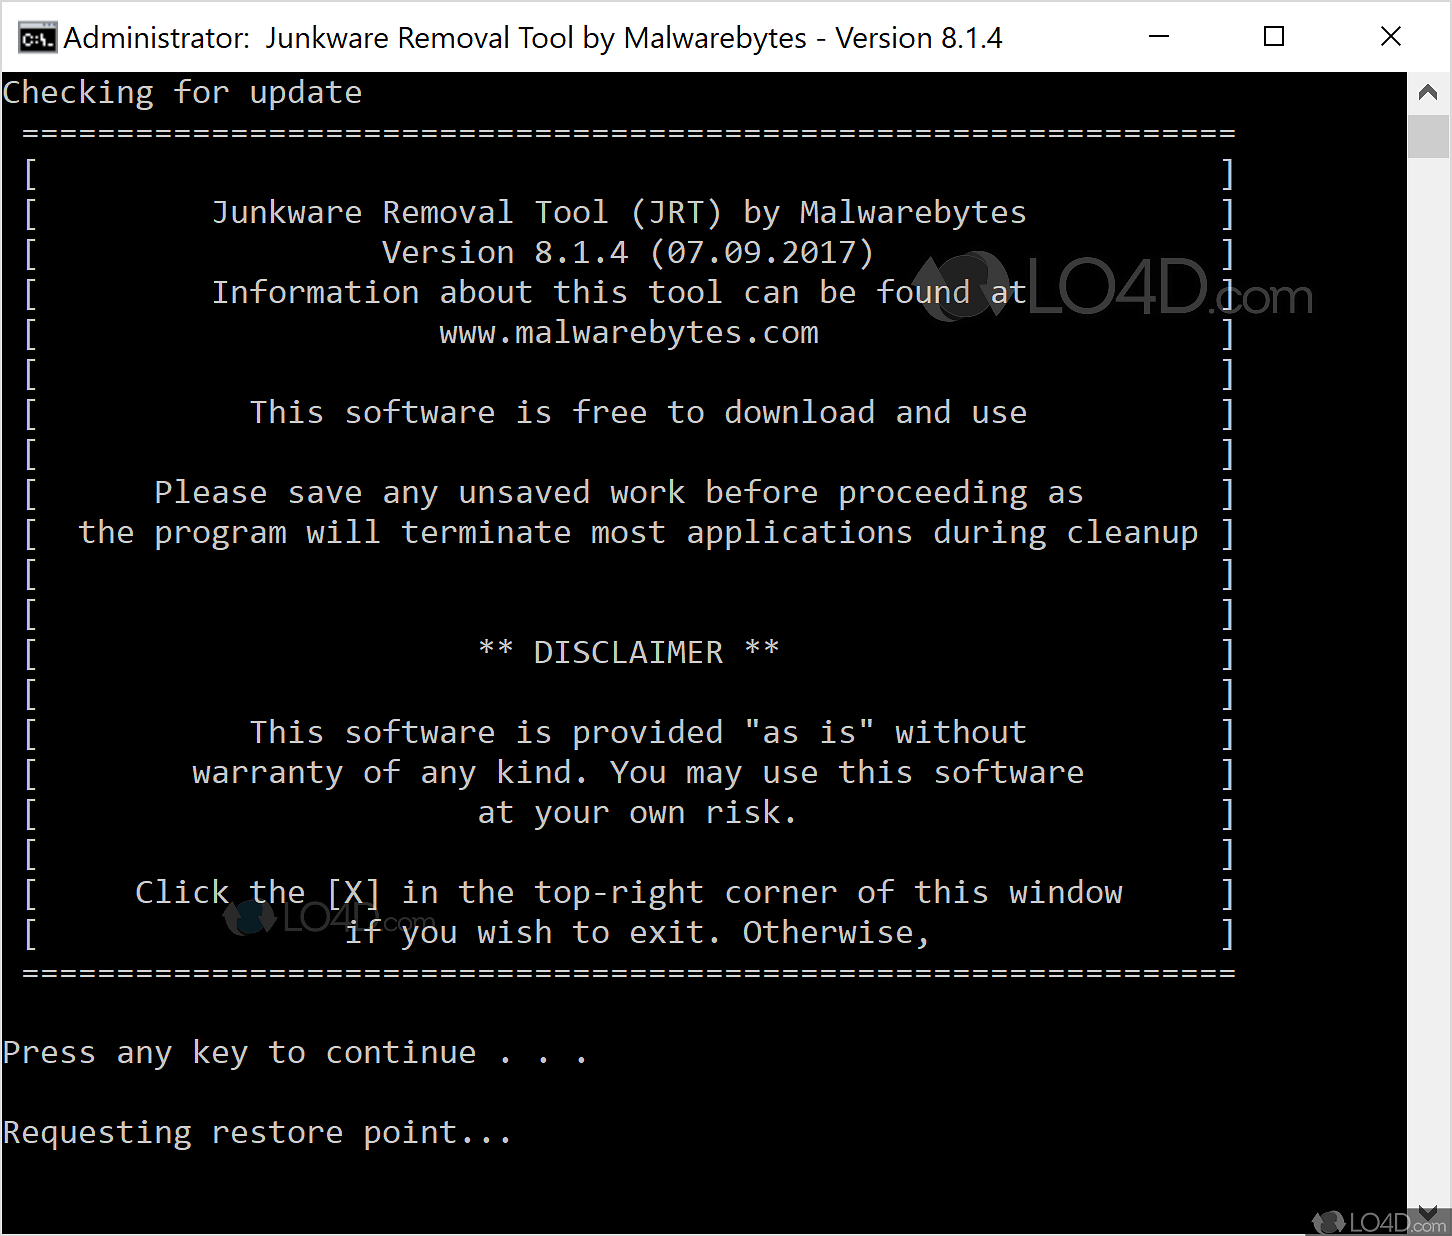 Junkware Removal Tool - Download